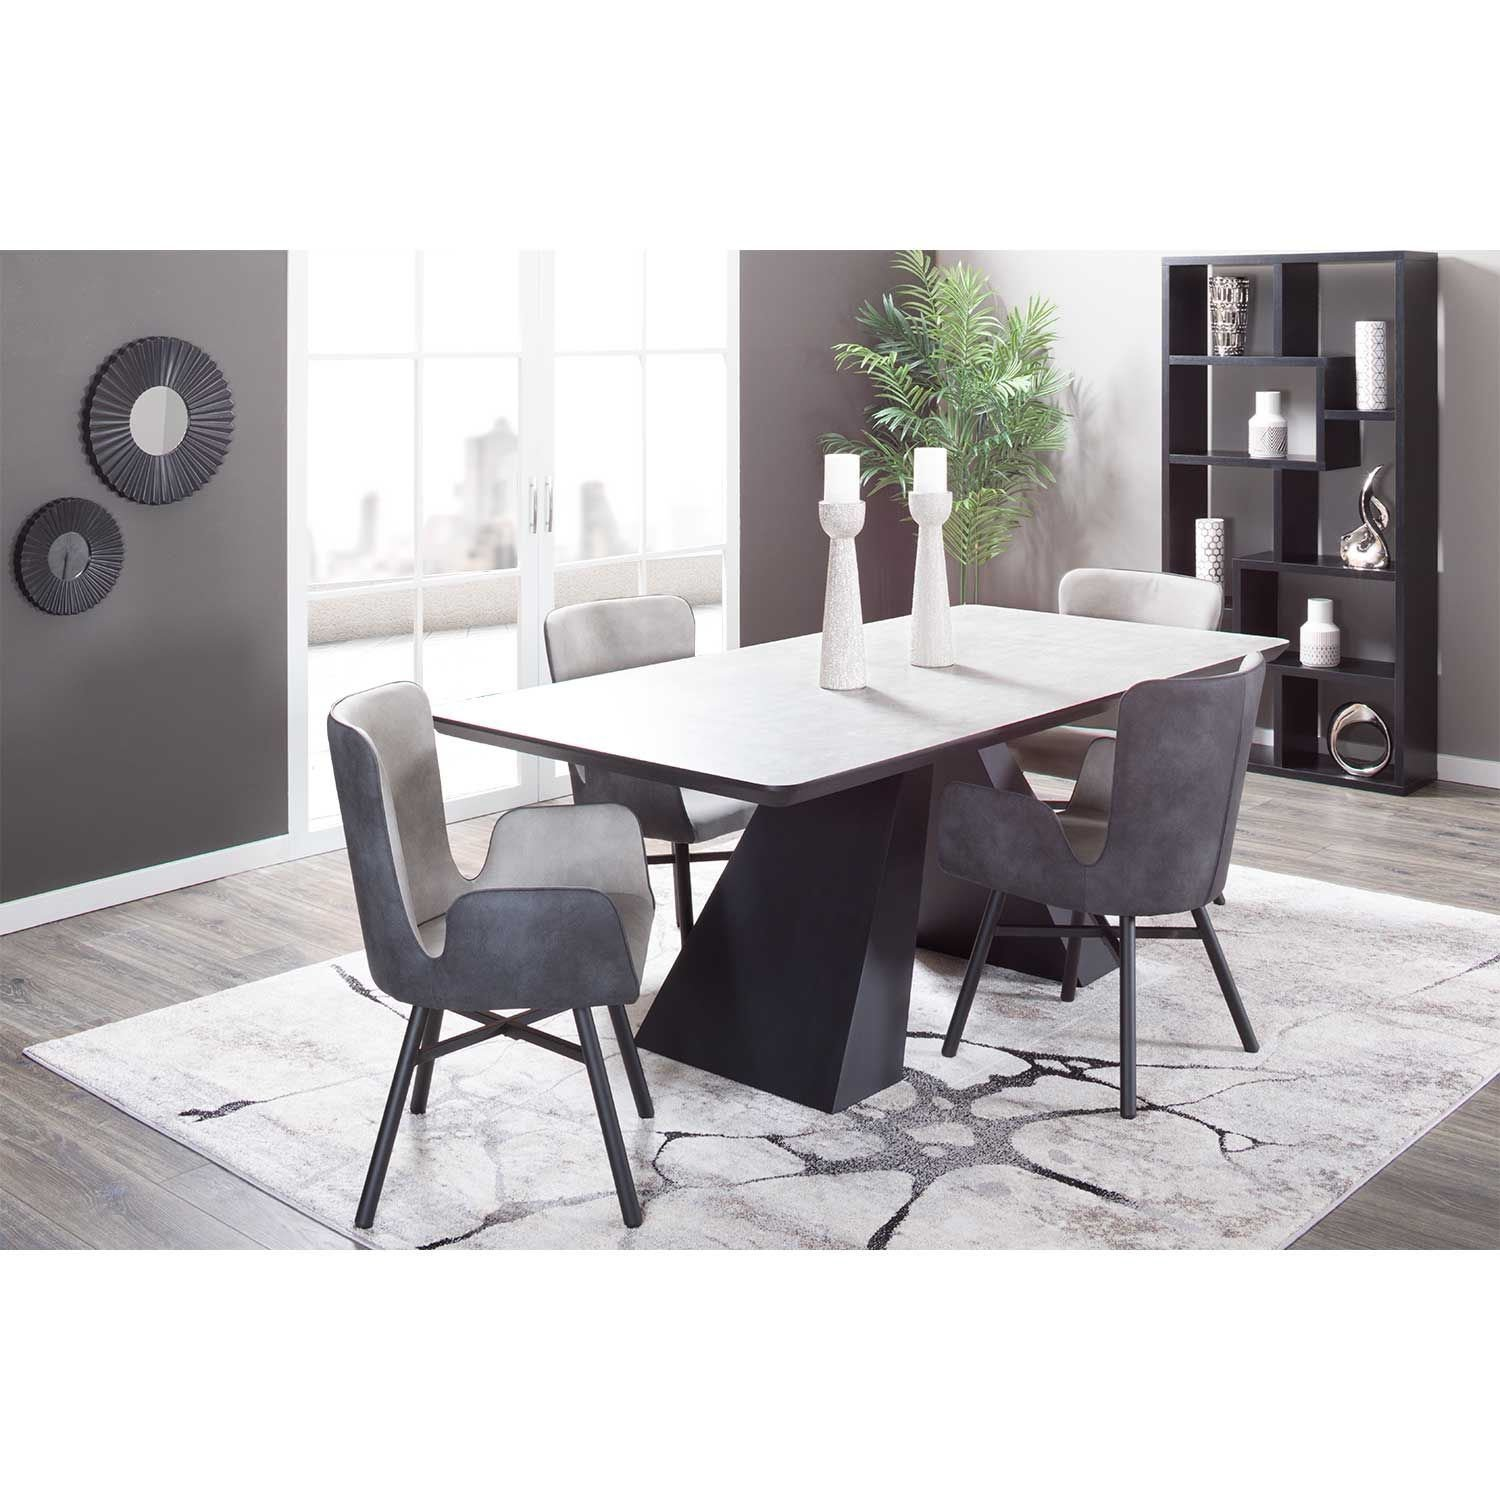 Picture of Airy Dining Table